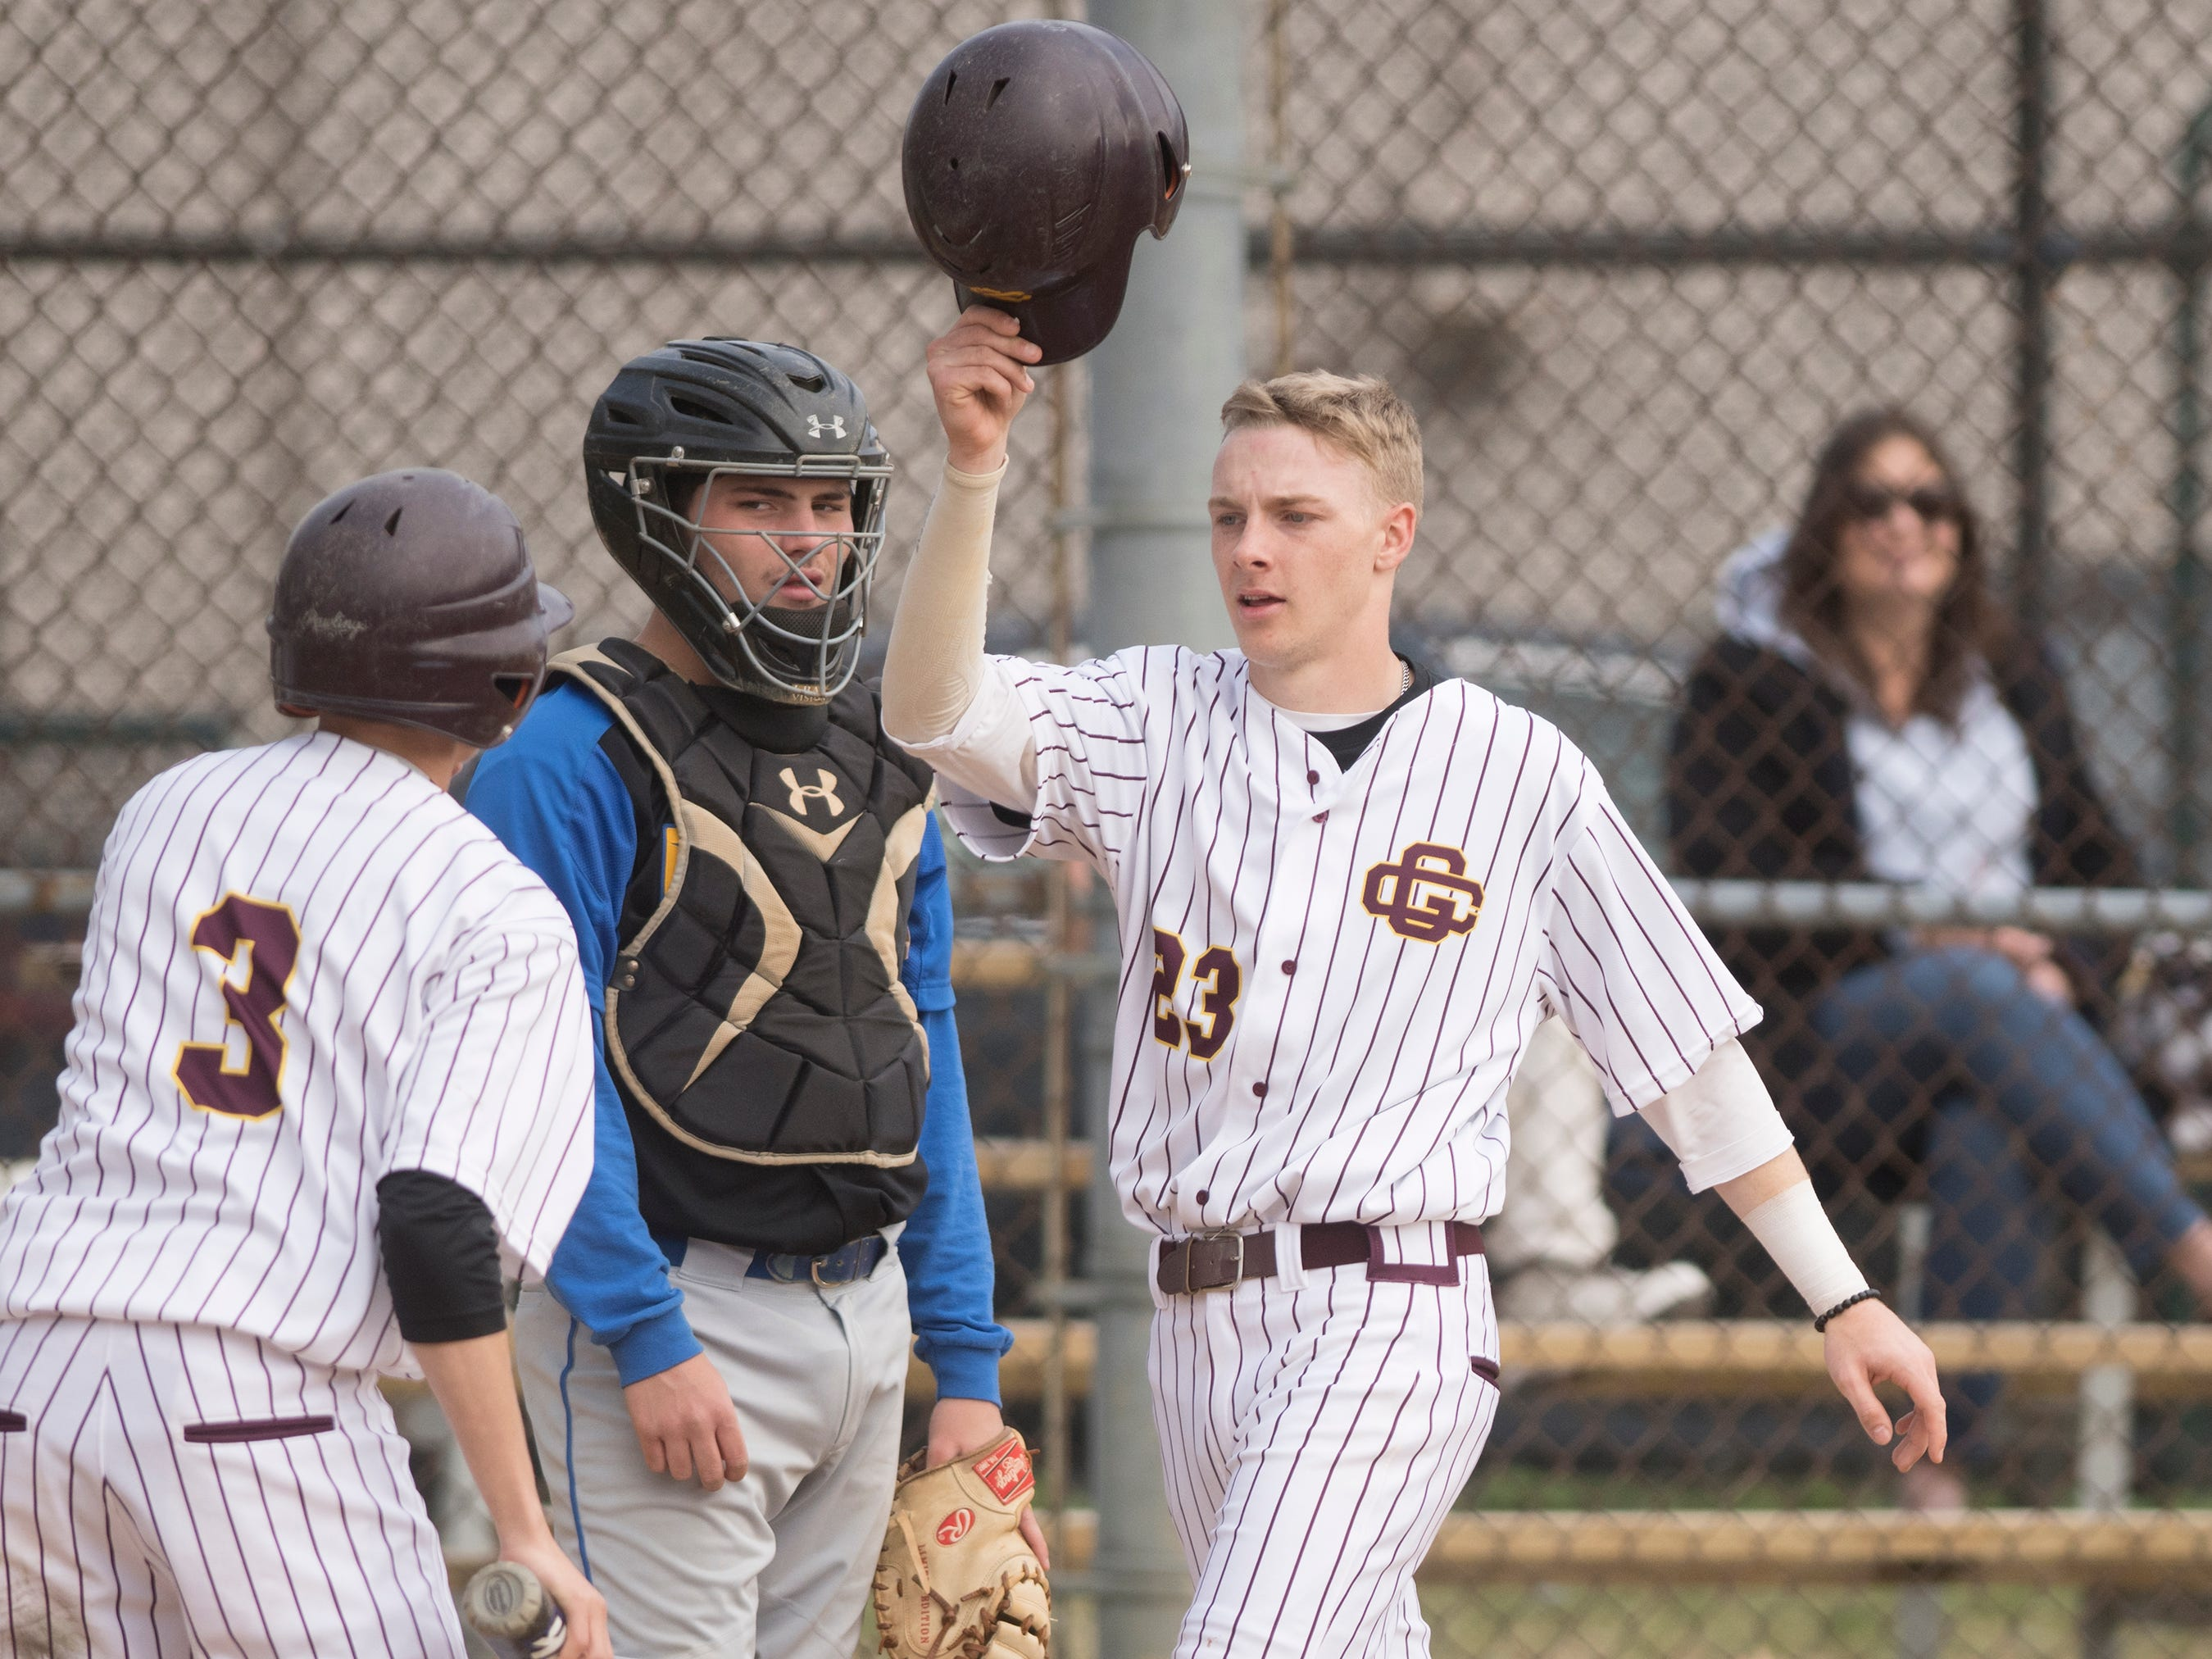 Gloucester Catholic's Tyler Cannon, right, celebrates after scoring a run during Gloucester Catholic's 13- 0 win over Pennsville at Joe Barth Field in Brooklawn on Wednesday, April 17, 2019.